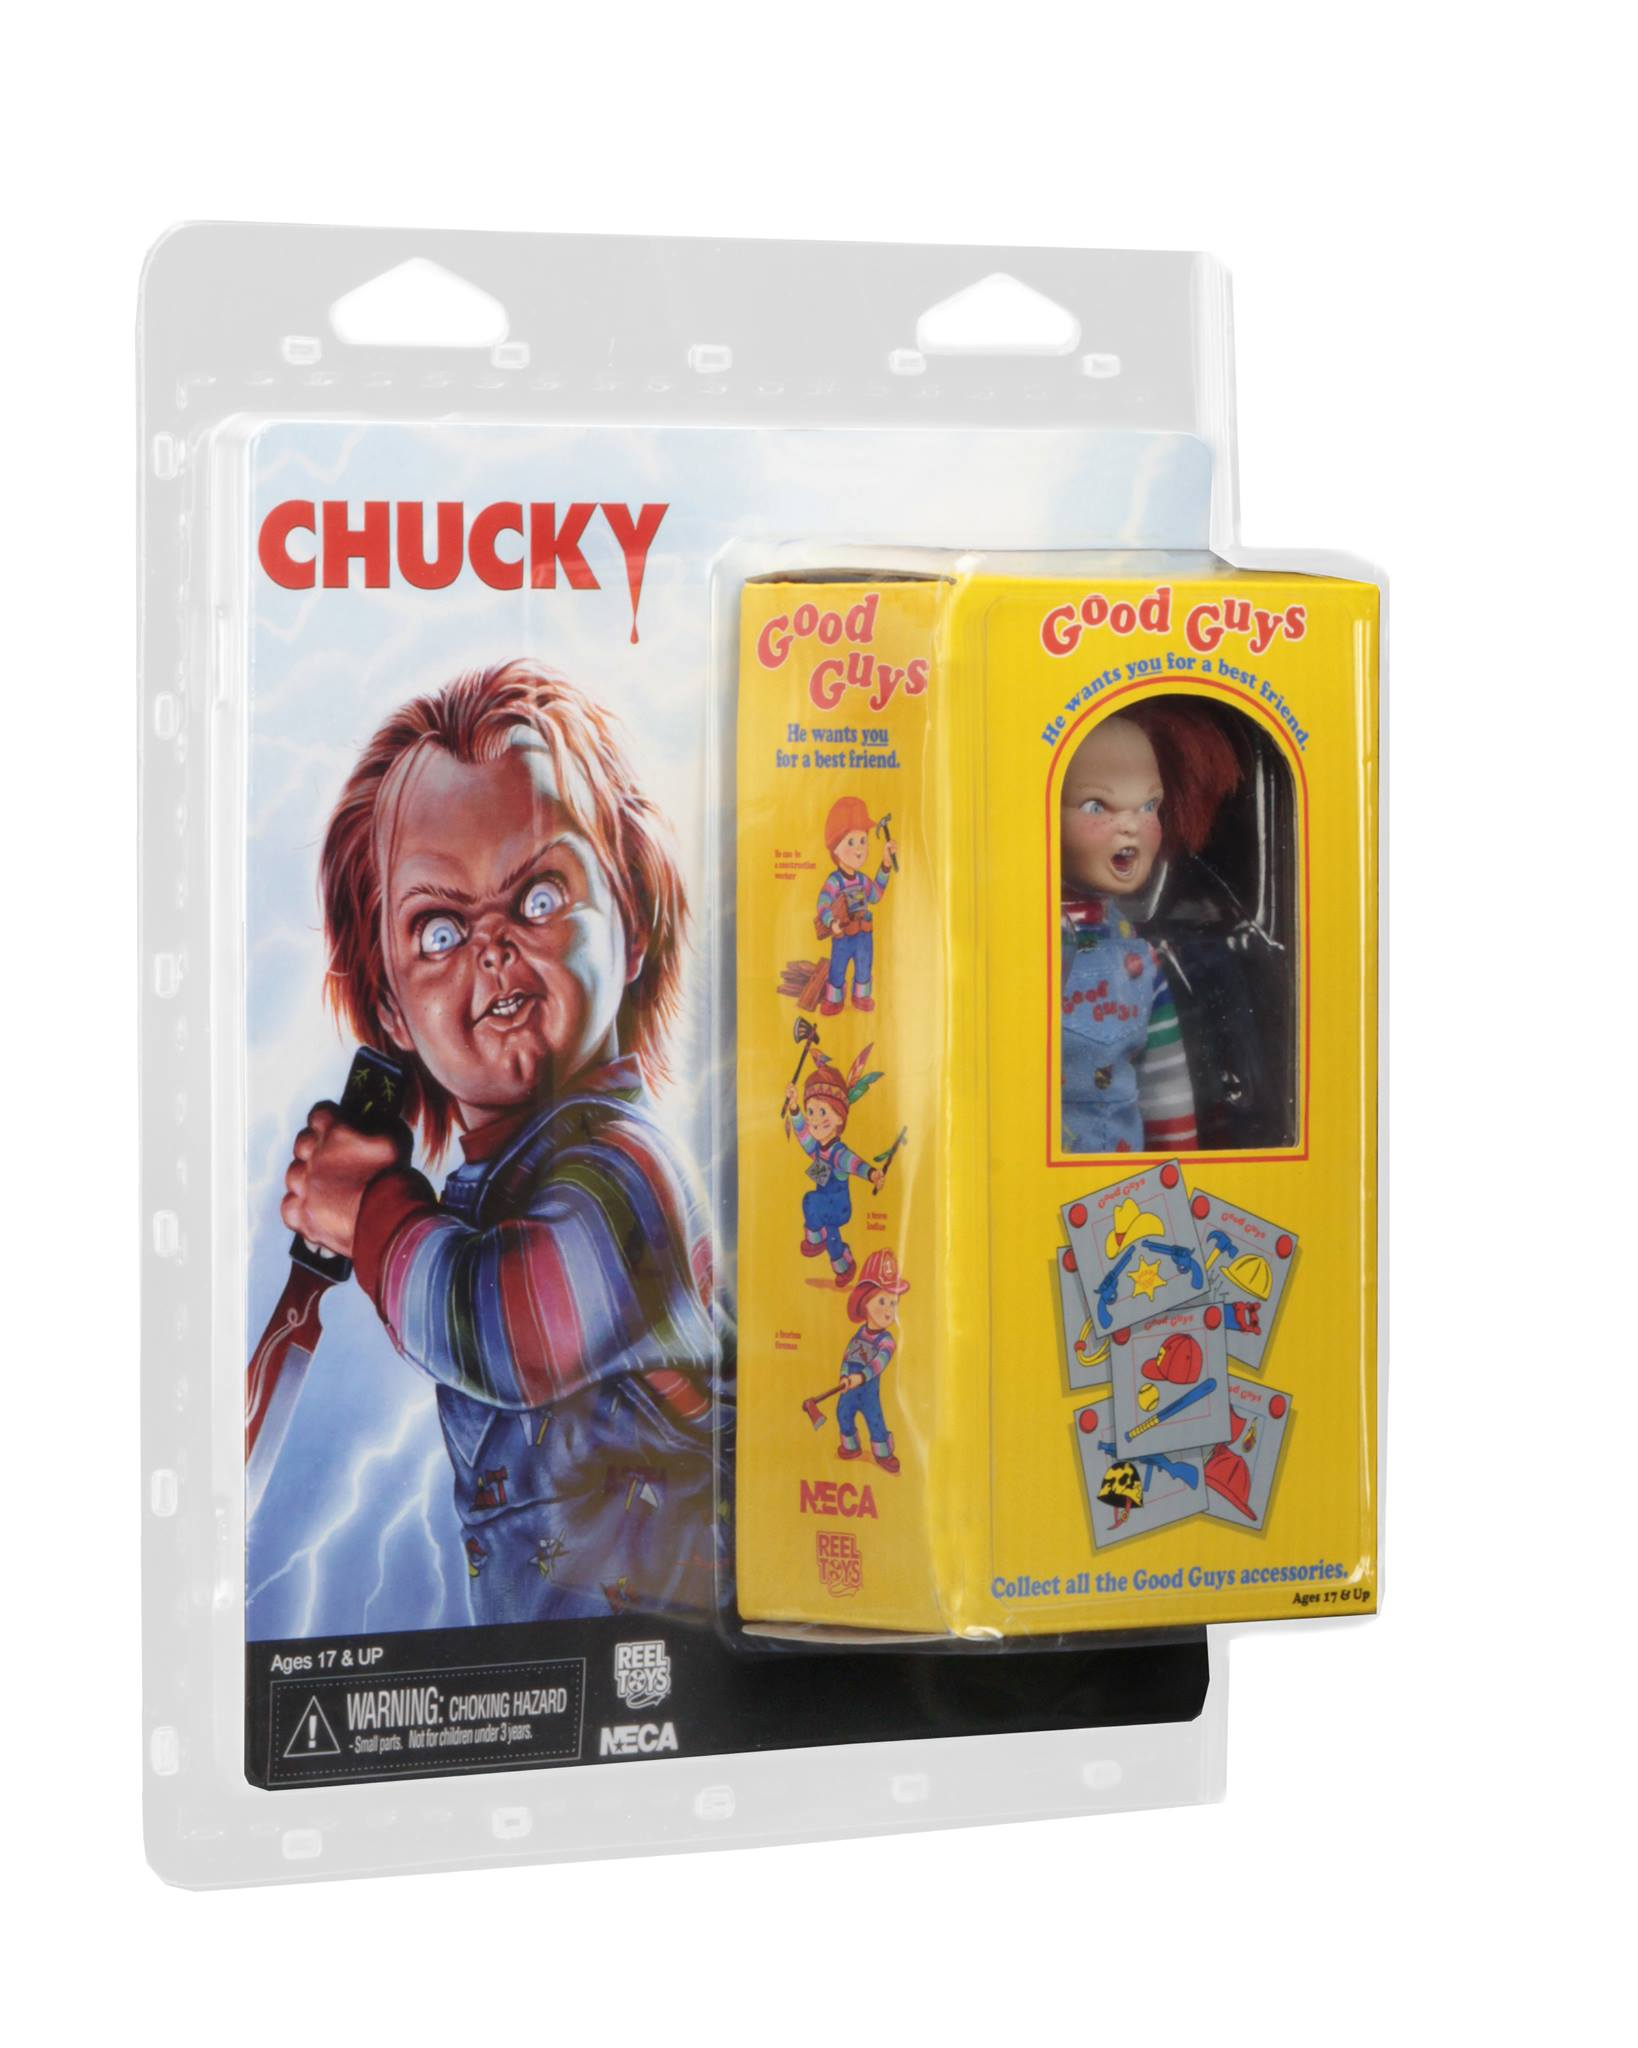 Neca Retro Style Child S Play Chucky Figure In Packaging